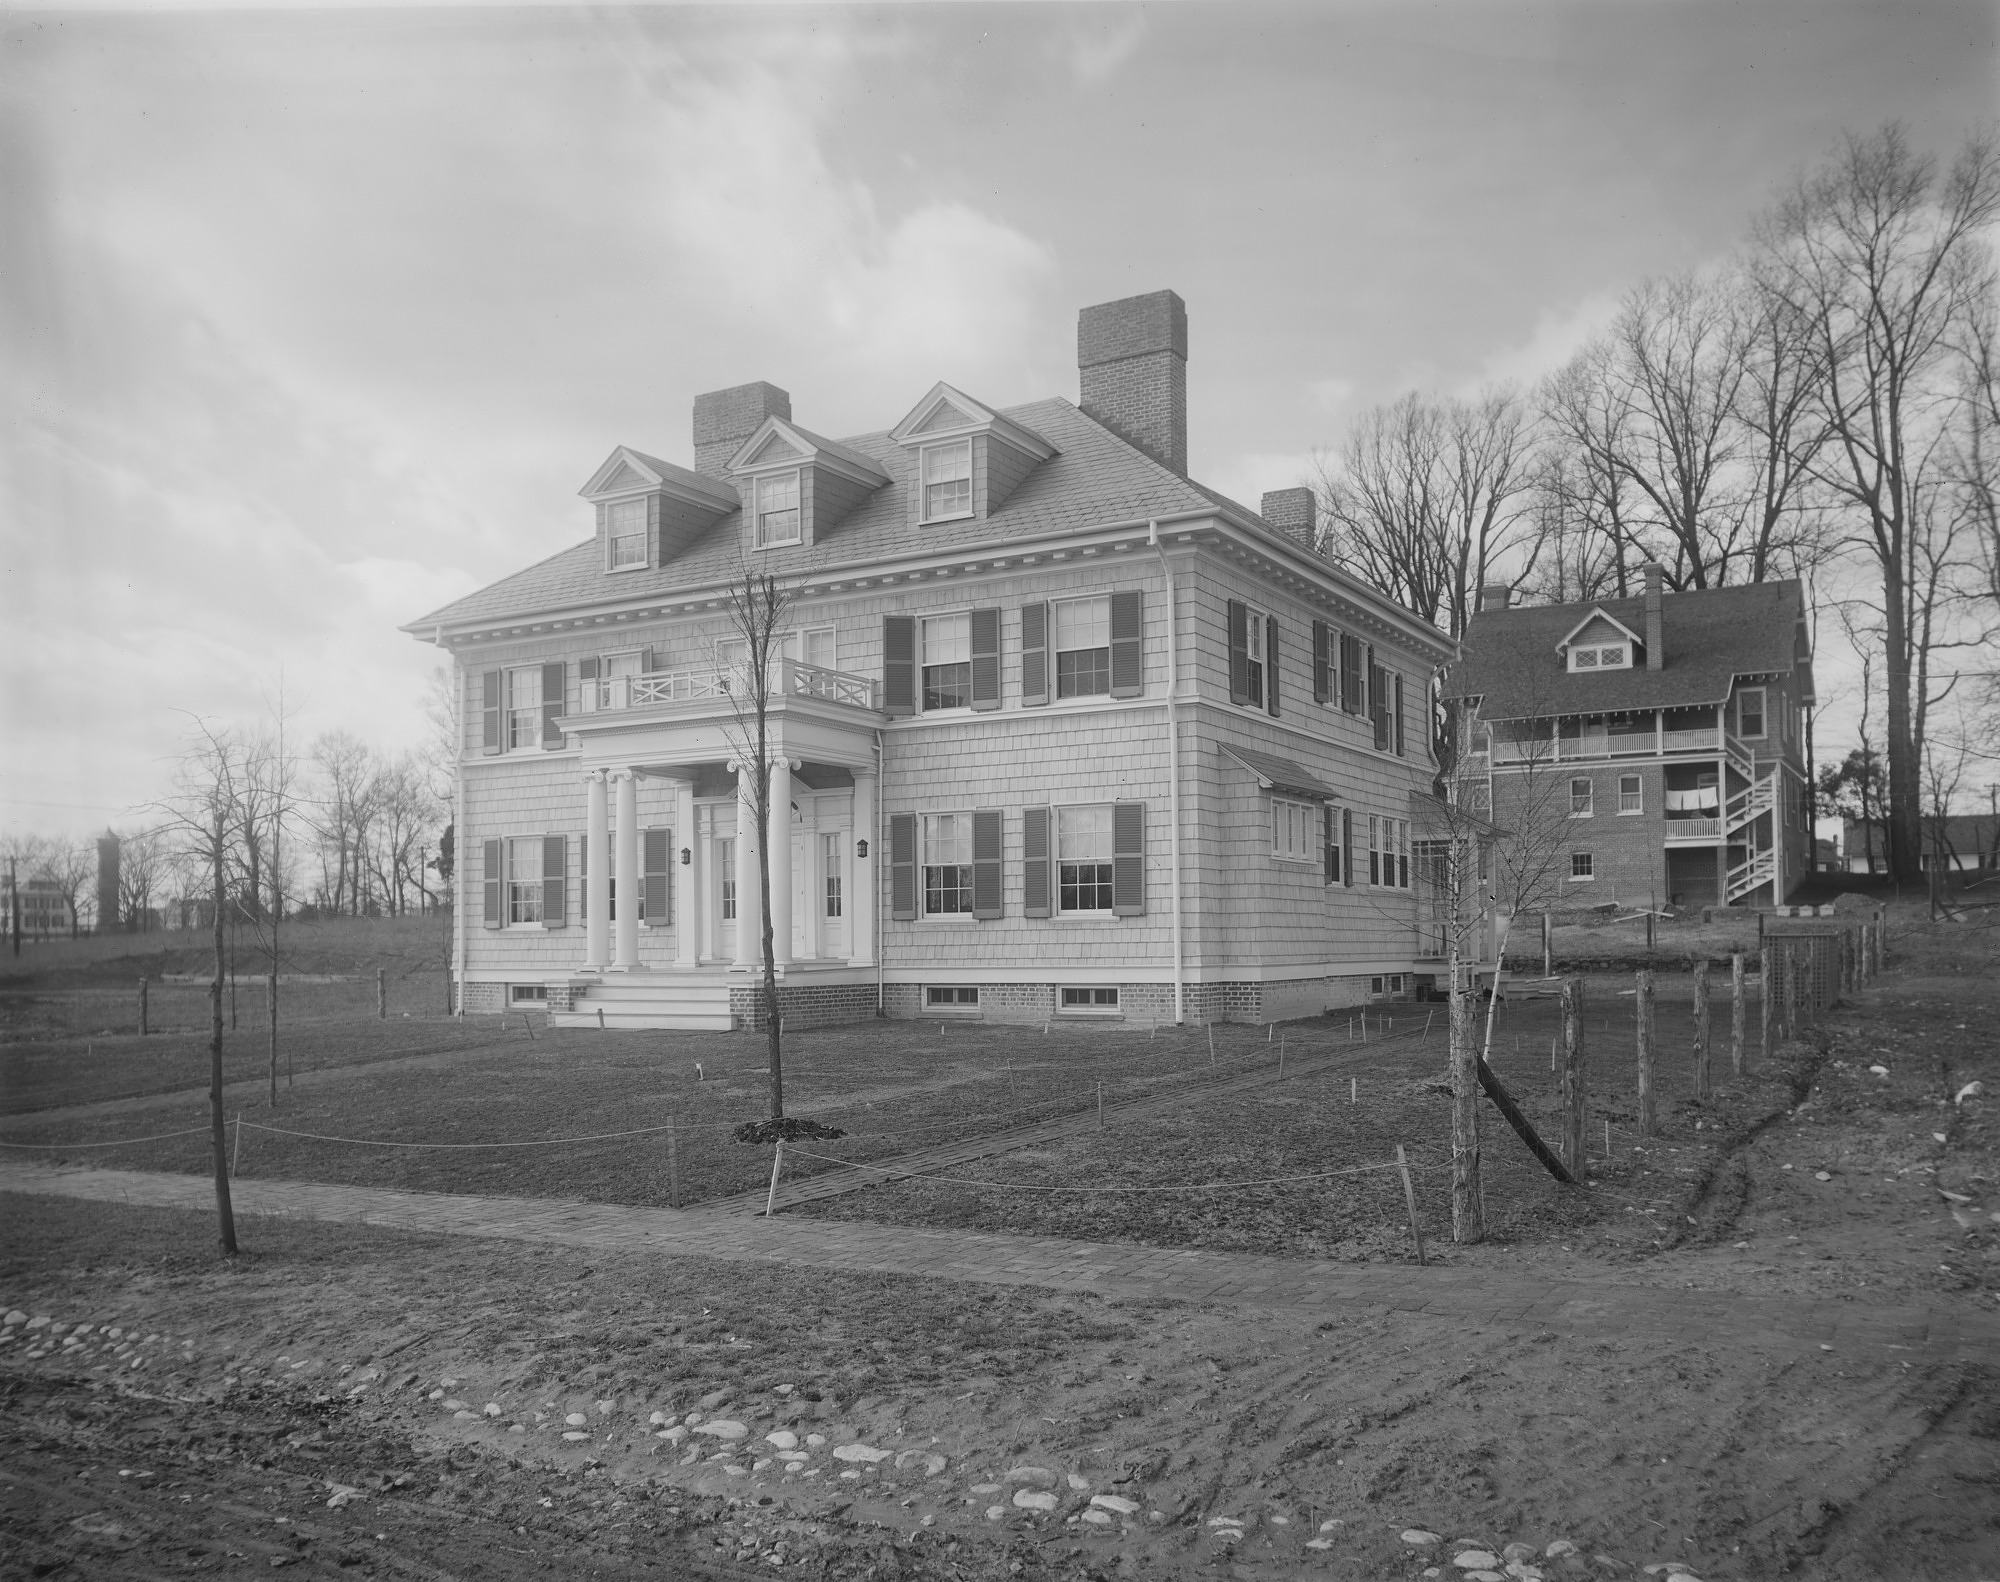 [Ogilby Garden]: the house, looking toward the back of the property.